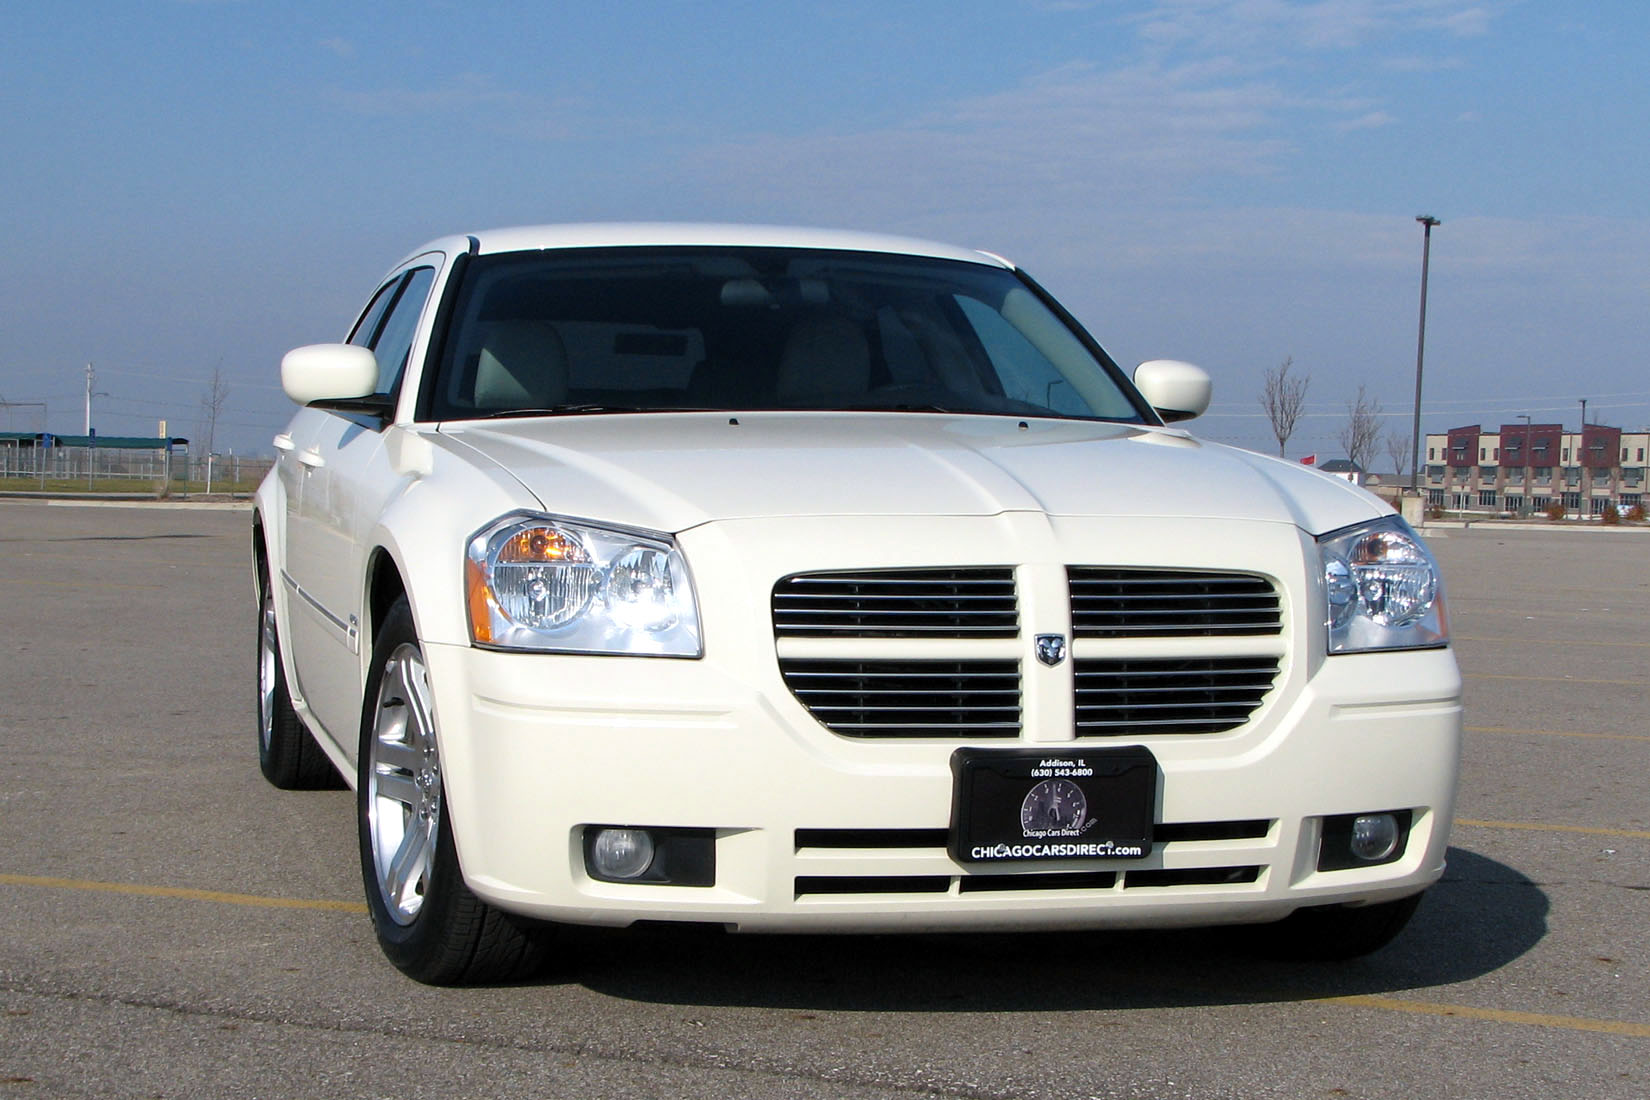 Cool Vanilla 2005 Dodge Magnum RT